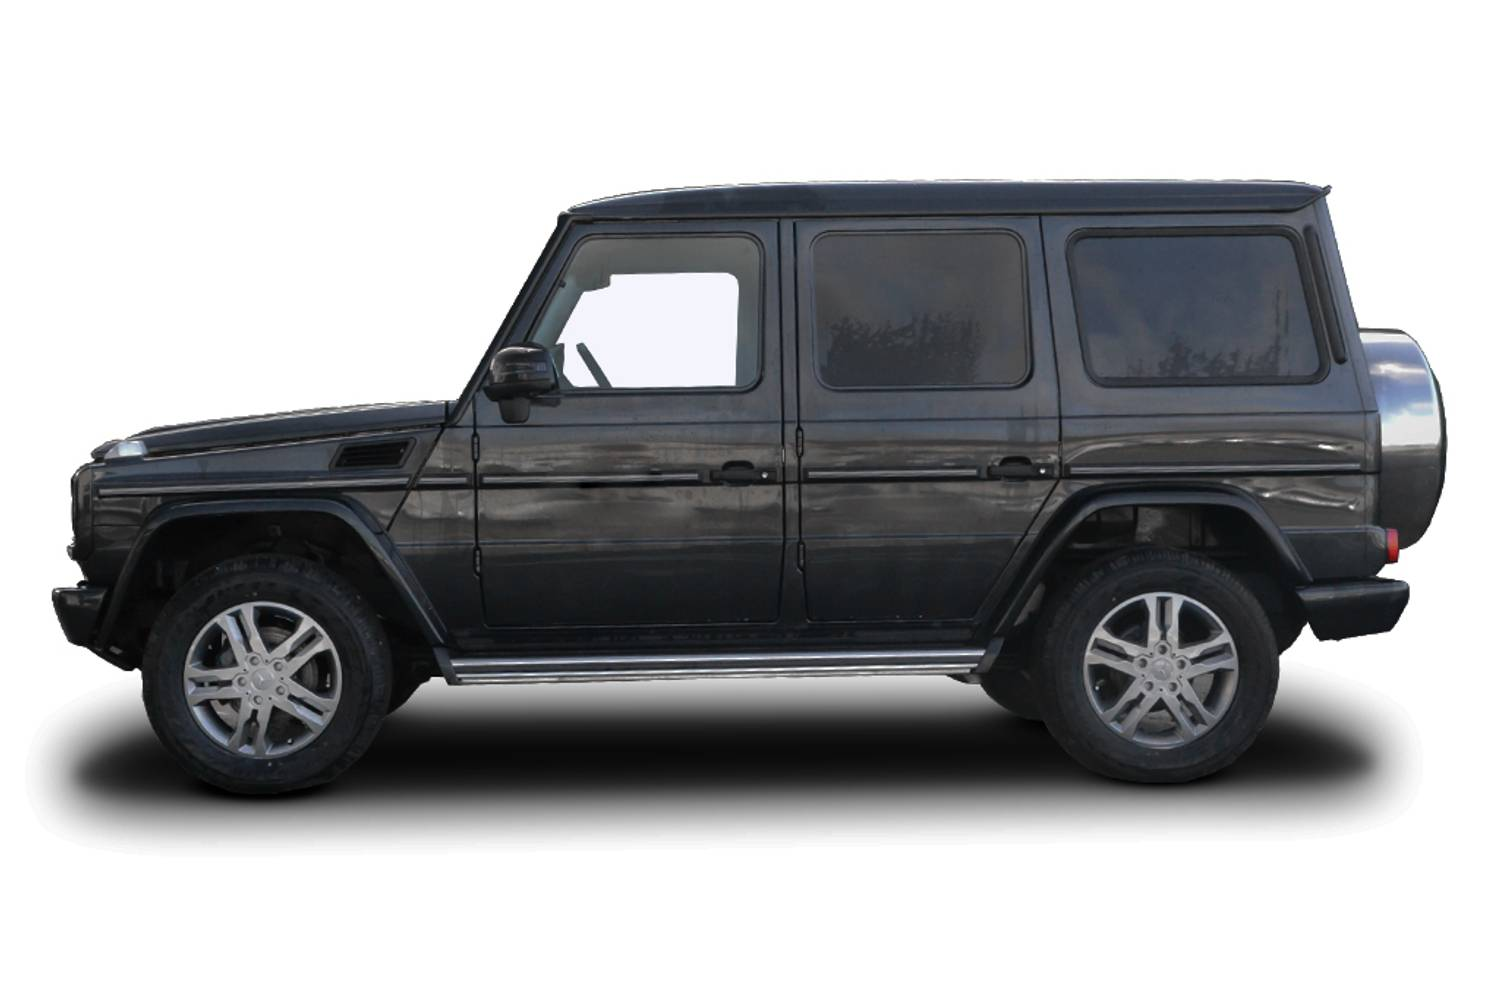 New Mercedes Benz G Class Amg Station Wagon Special